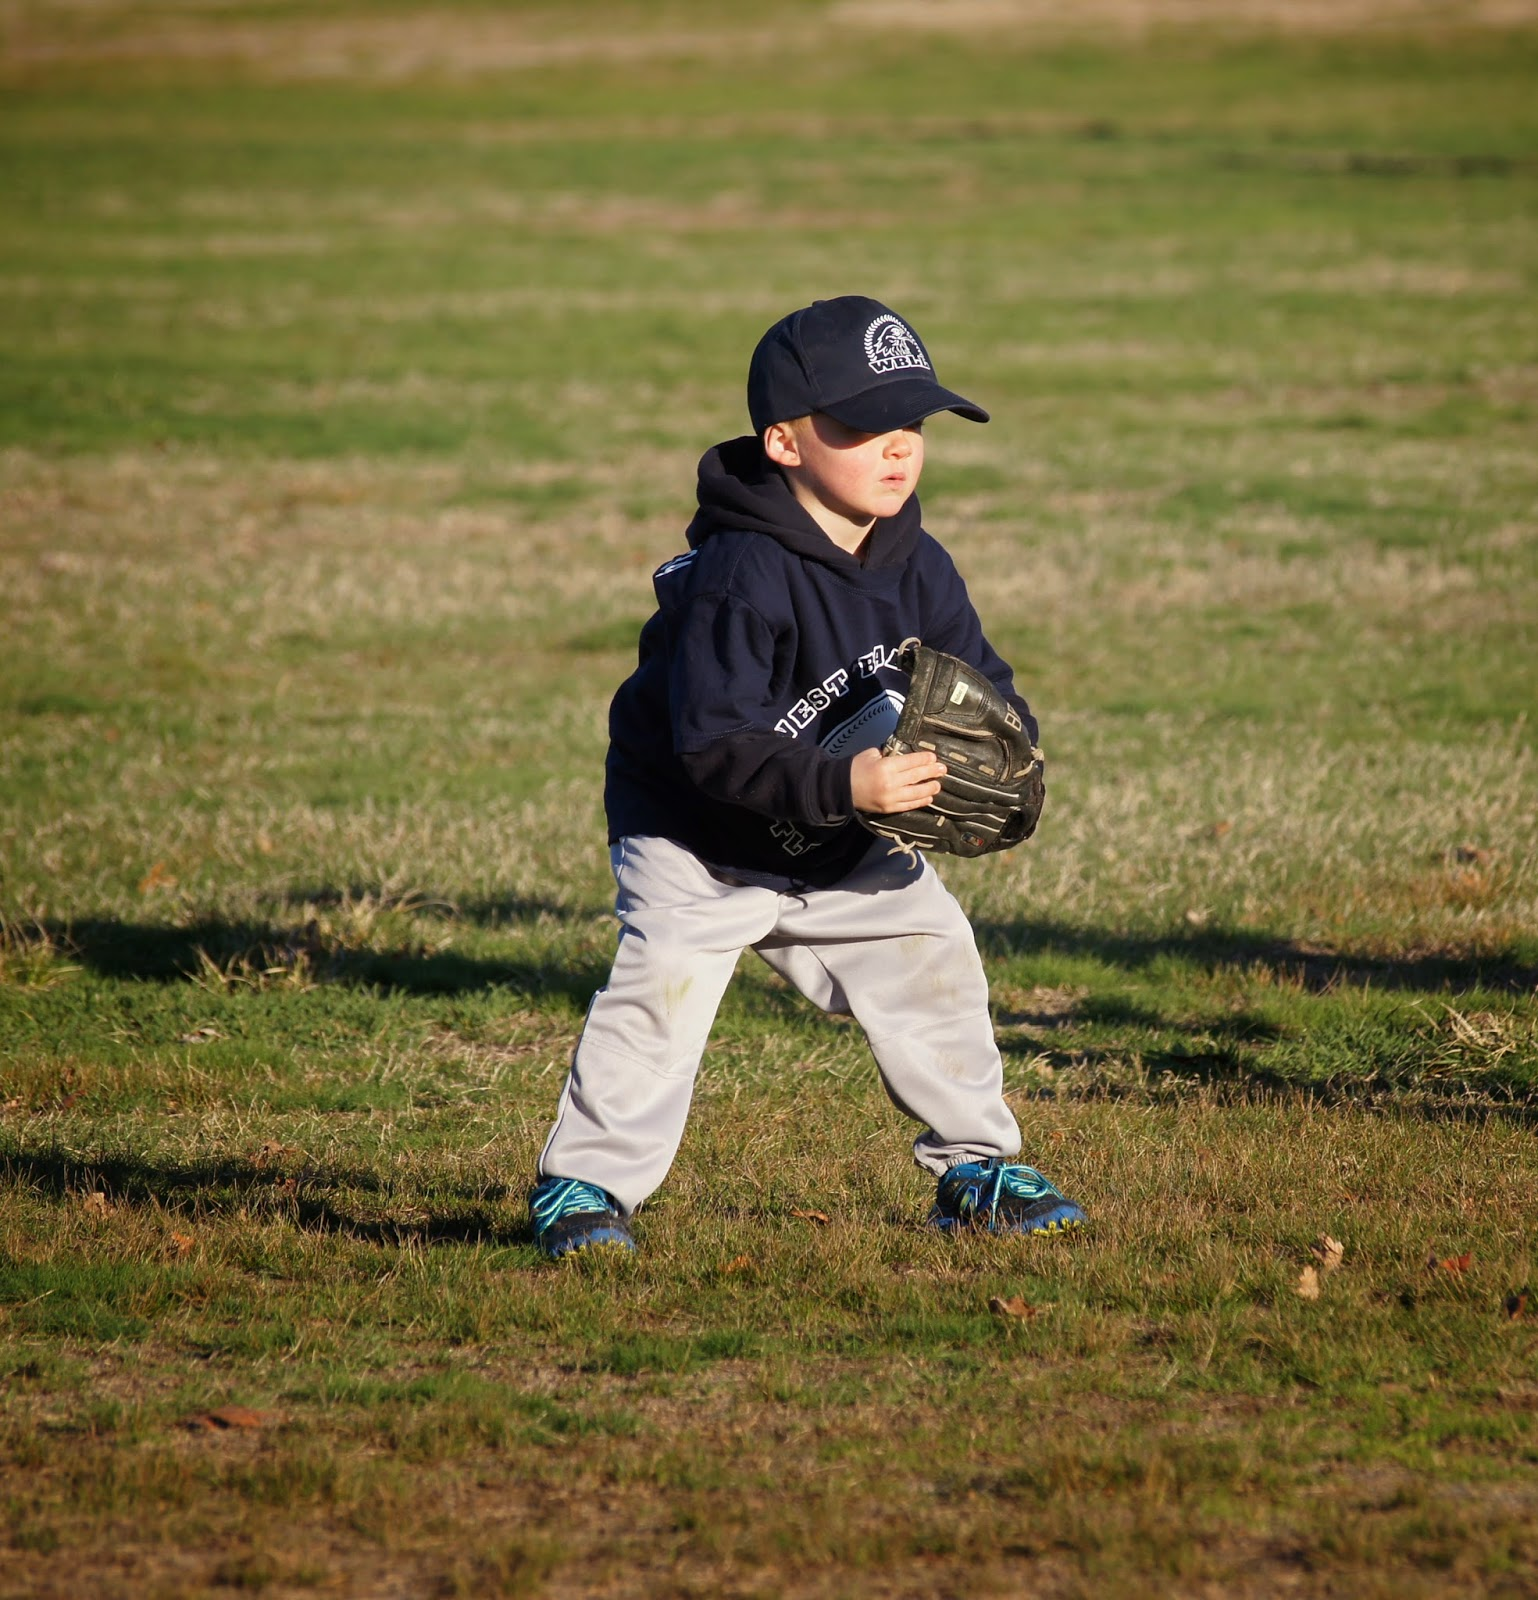 tball playing the field